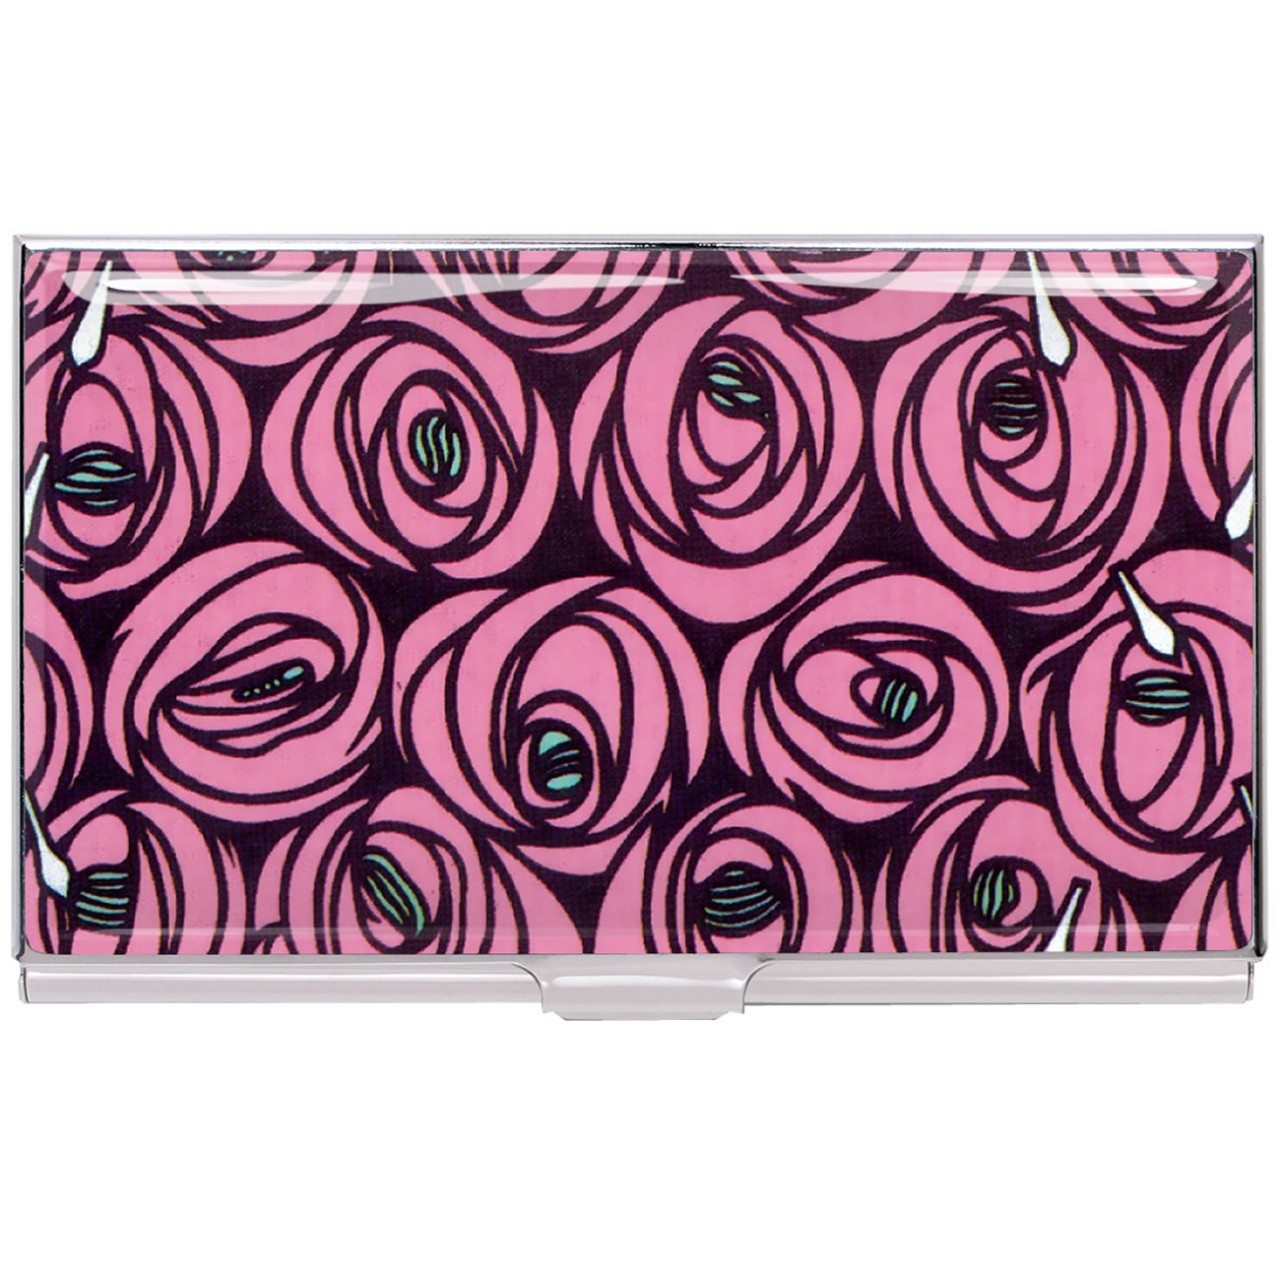 ACME Roses Card Case